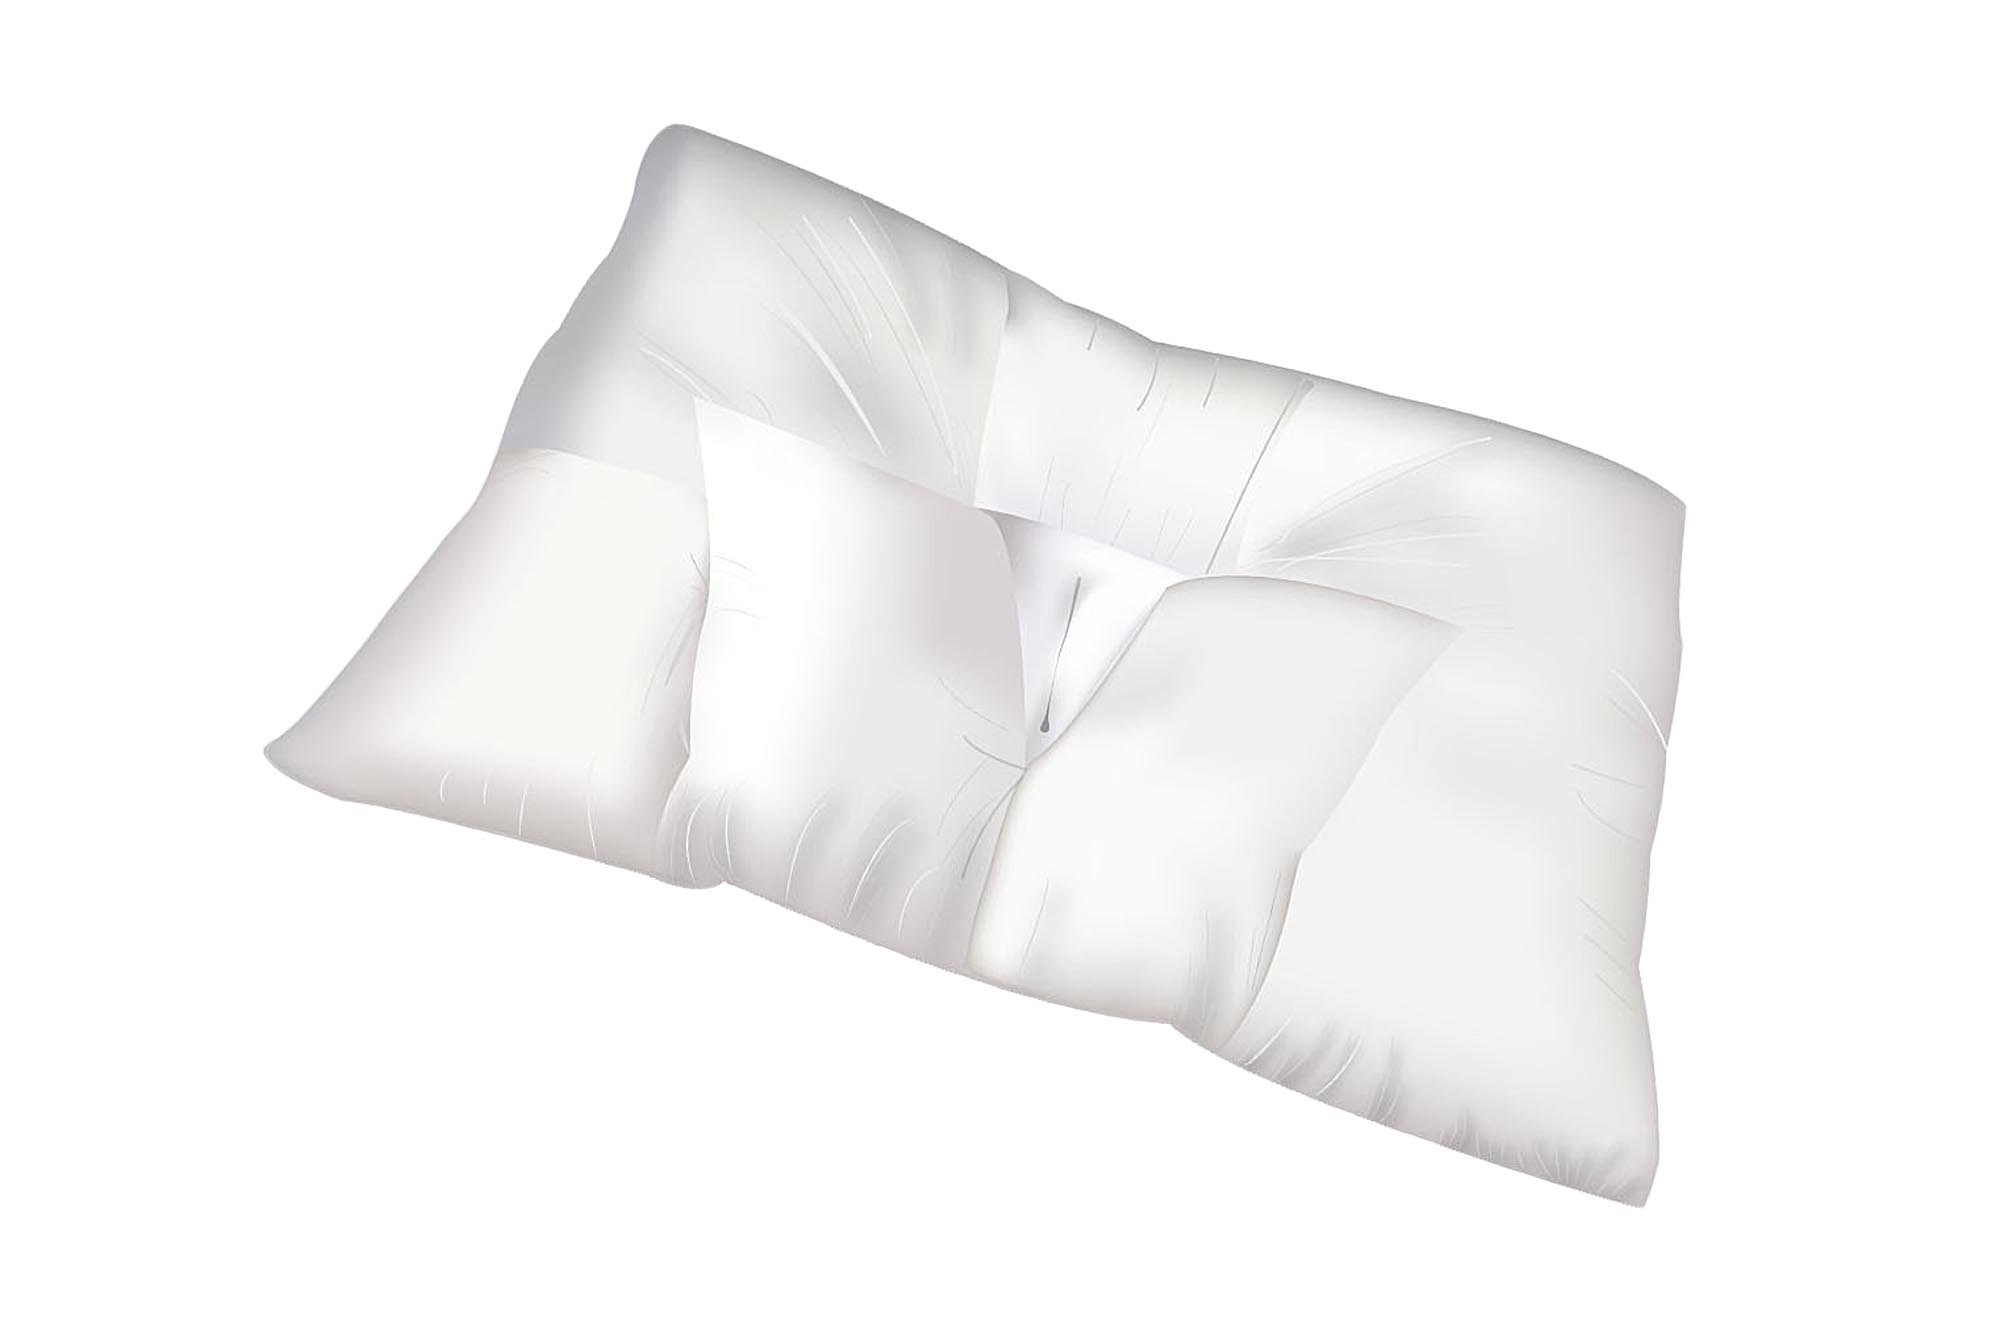 Arc4life Traction Pillows for Sleeping with Pillow Covers - King, Queen, Travel Bed Size Pillows, Side and Back Sleeper with Zip Protectors, Cervical Traction (Large: 28'' x 17'')